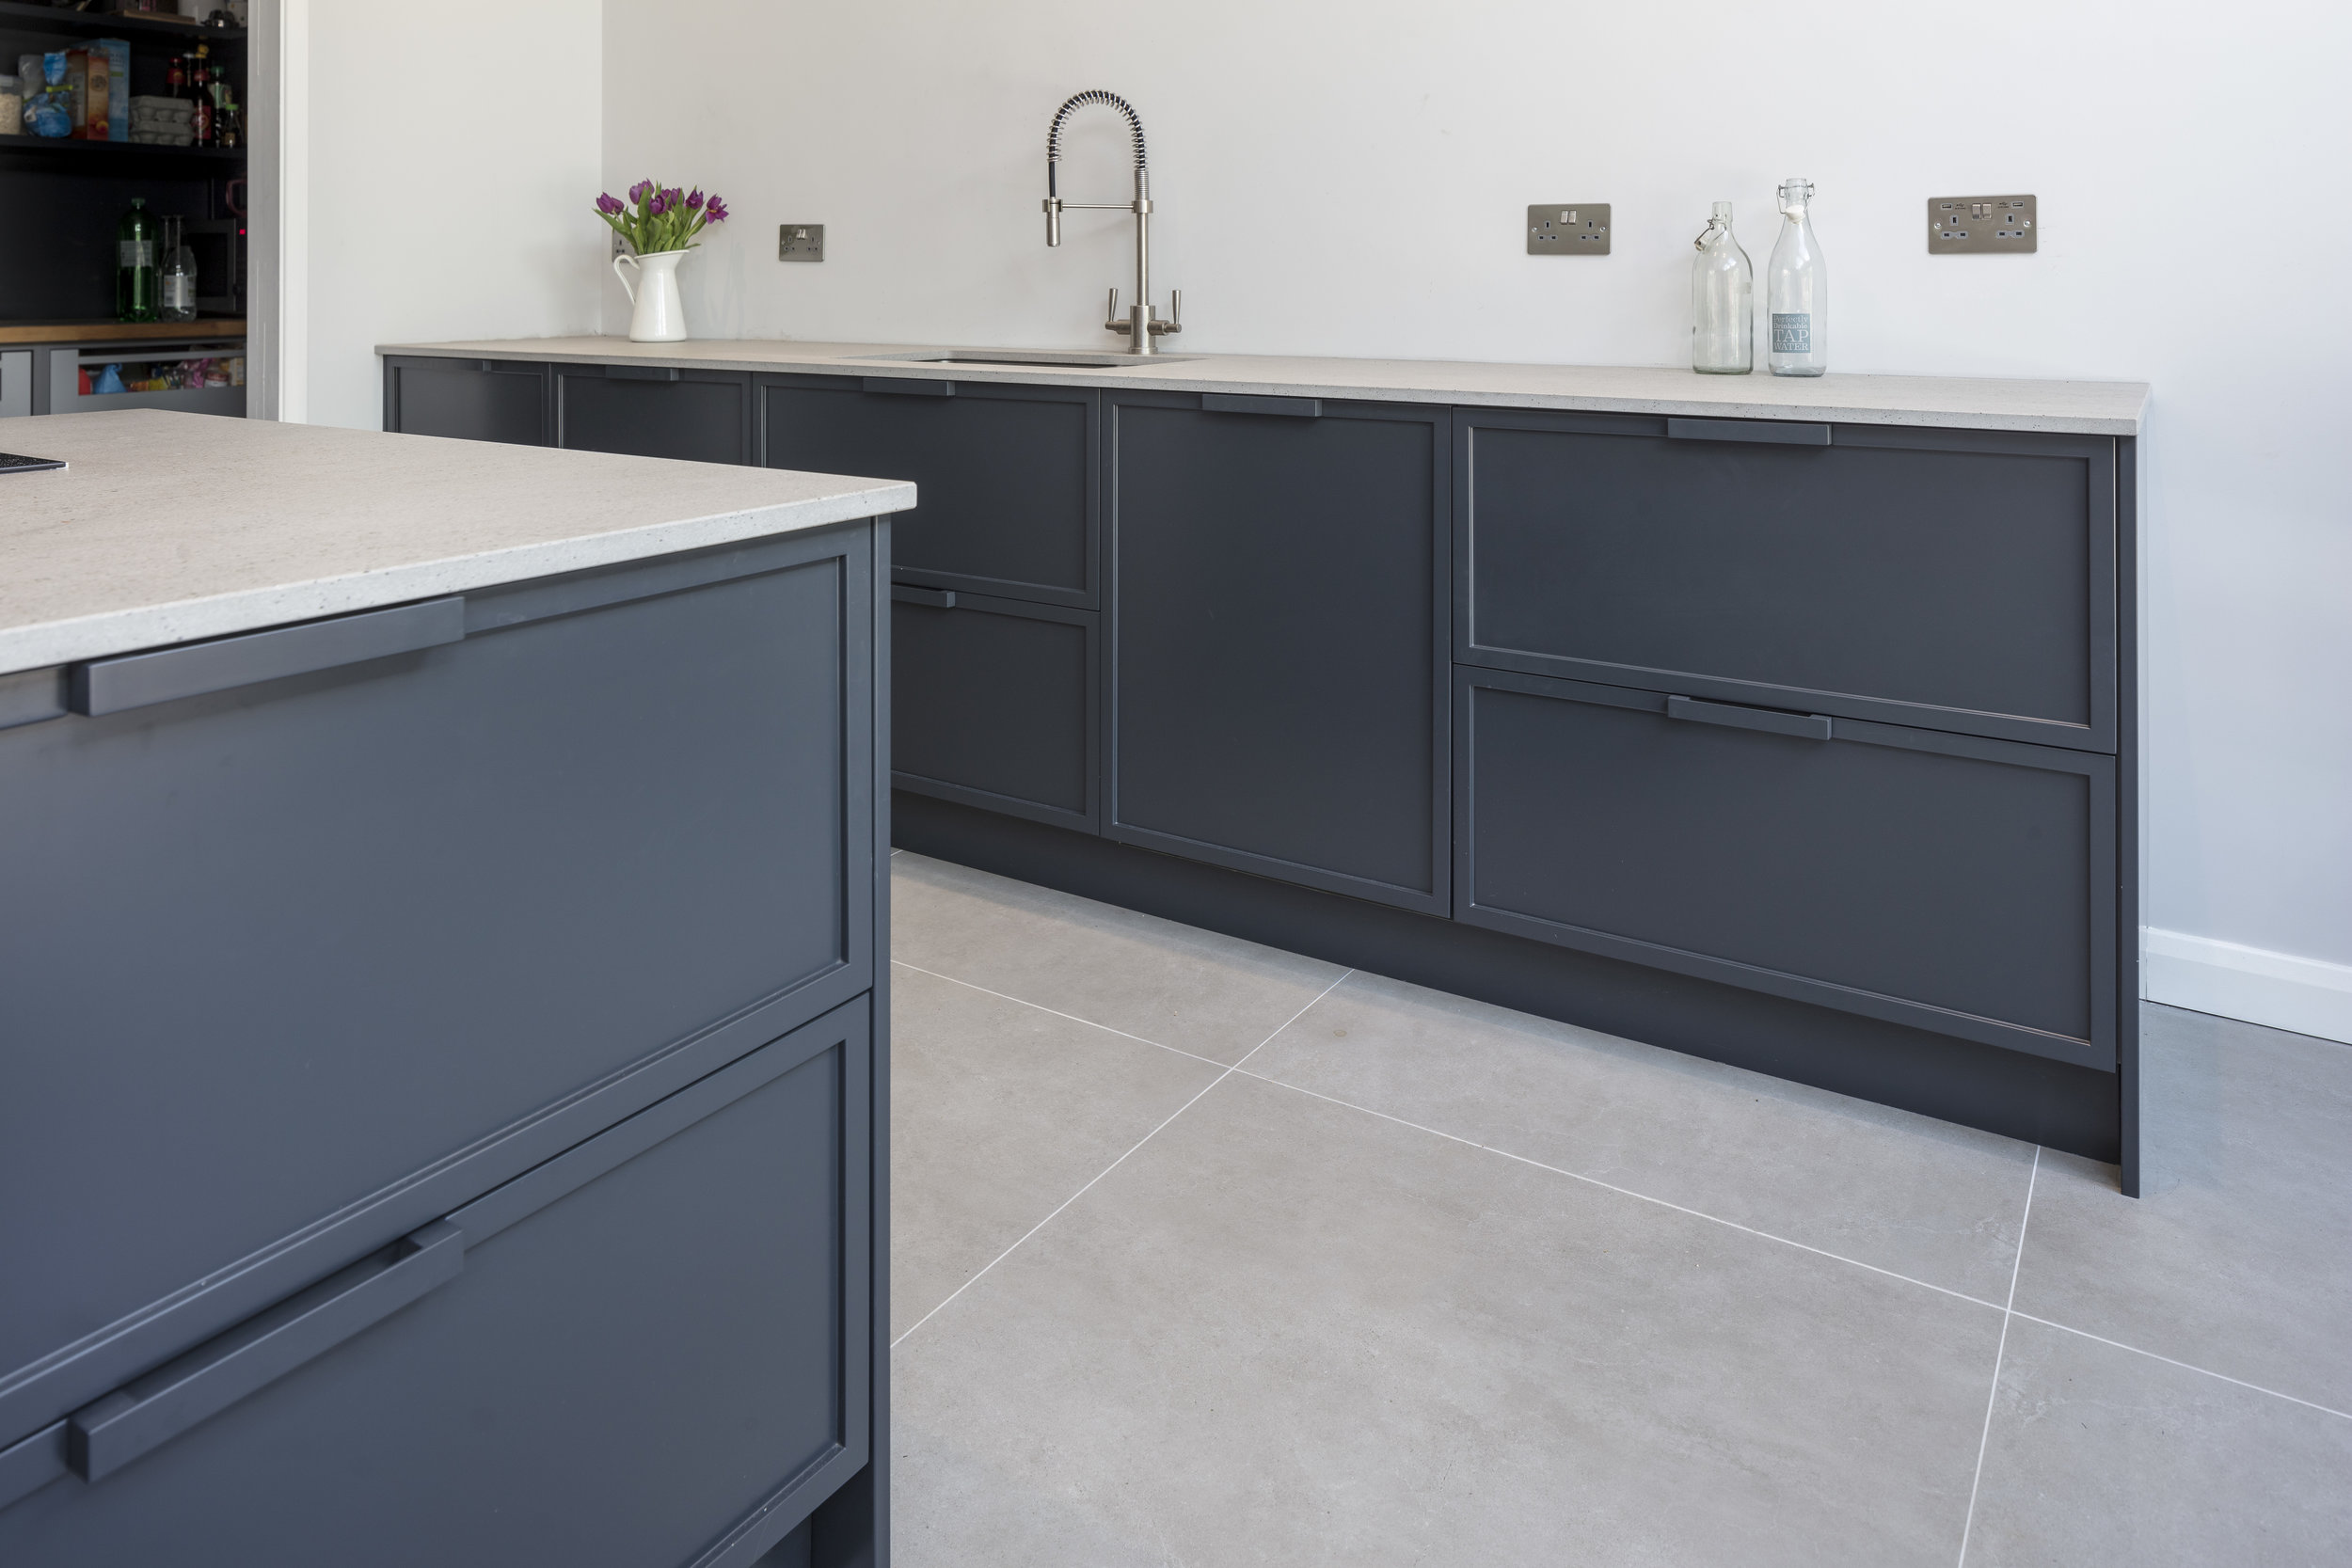 How brave will you be? - All of our kitchens can be finished in any colour you choose. We can match to a Farrow & Ball colour or why not find something completely off the wall! A beautiful dark blue, a gorgeous light grey or maybe a mix of the two? With matt and gloss options available in either a super durable spray finish, or a gorgeous hand painted finish, you really can have exactly what you want!